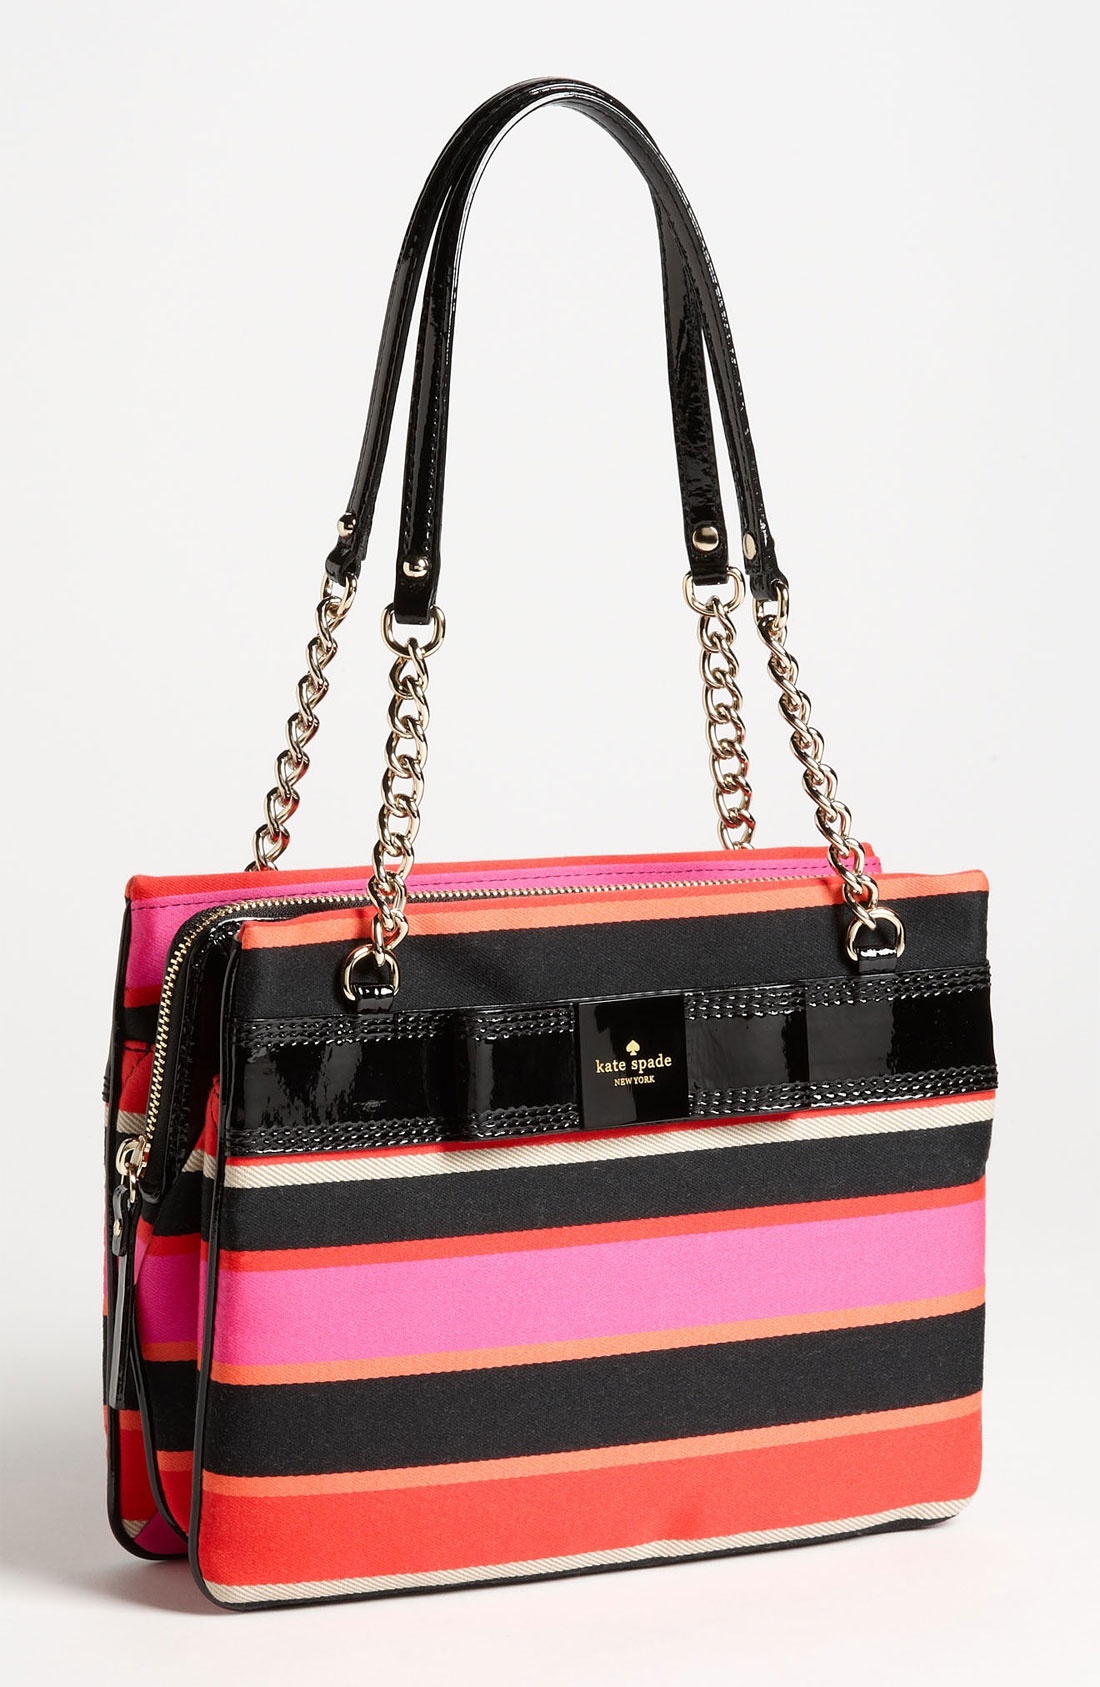 Kate Spade New York Zip Darcy Patent Leather Shoulder Bag 53